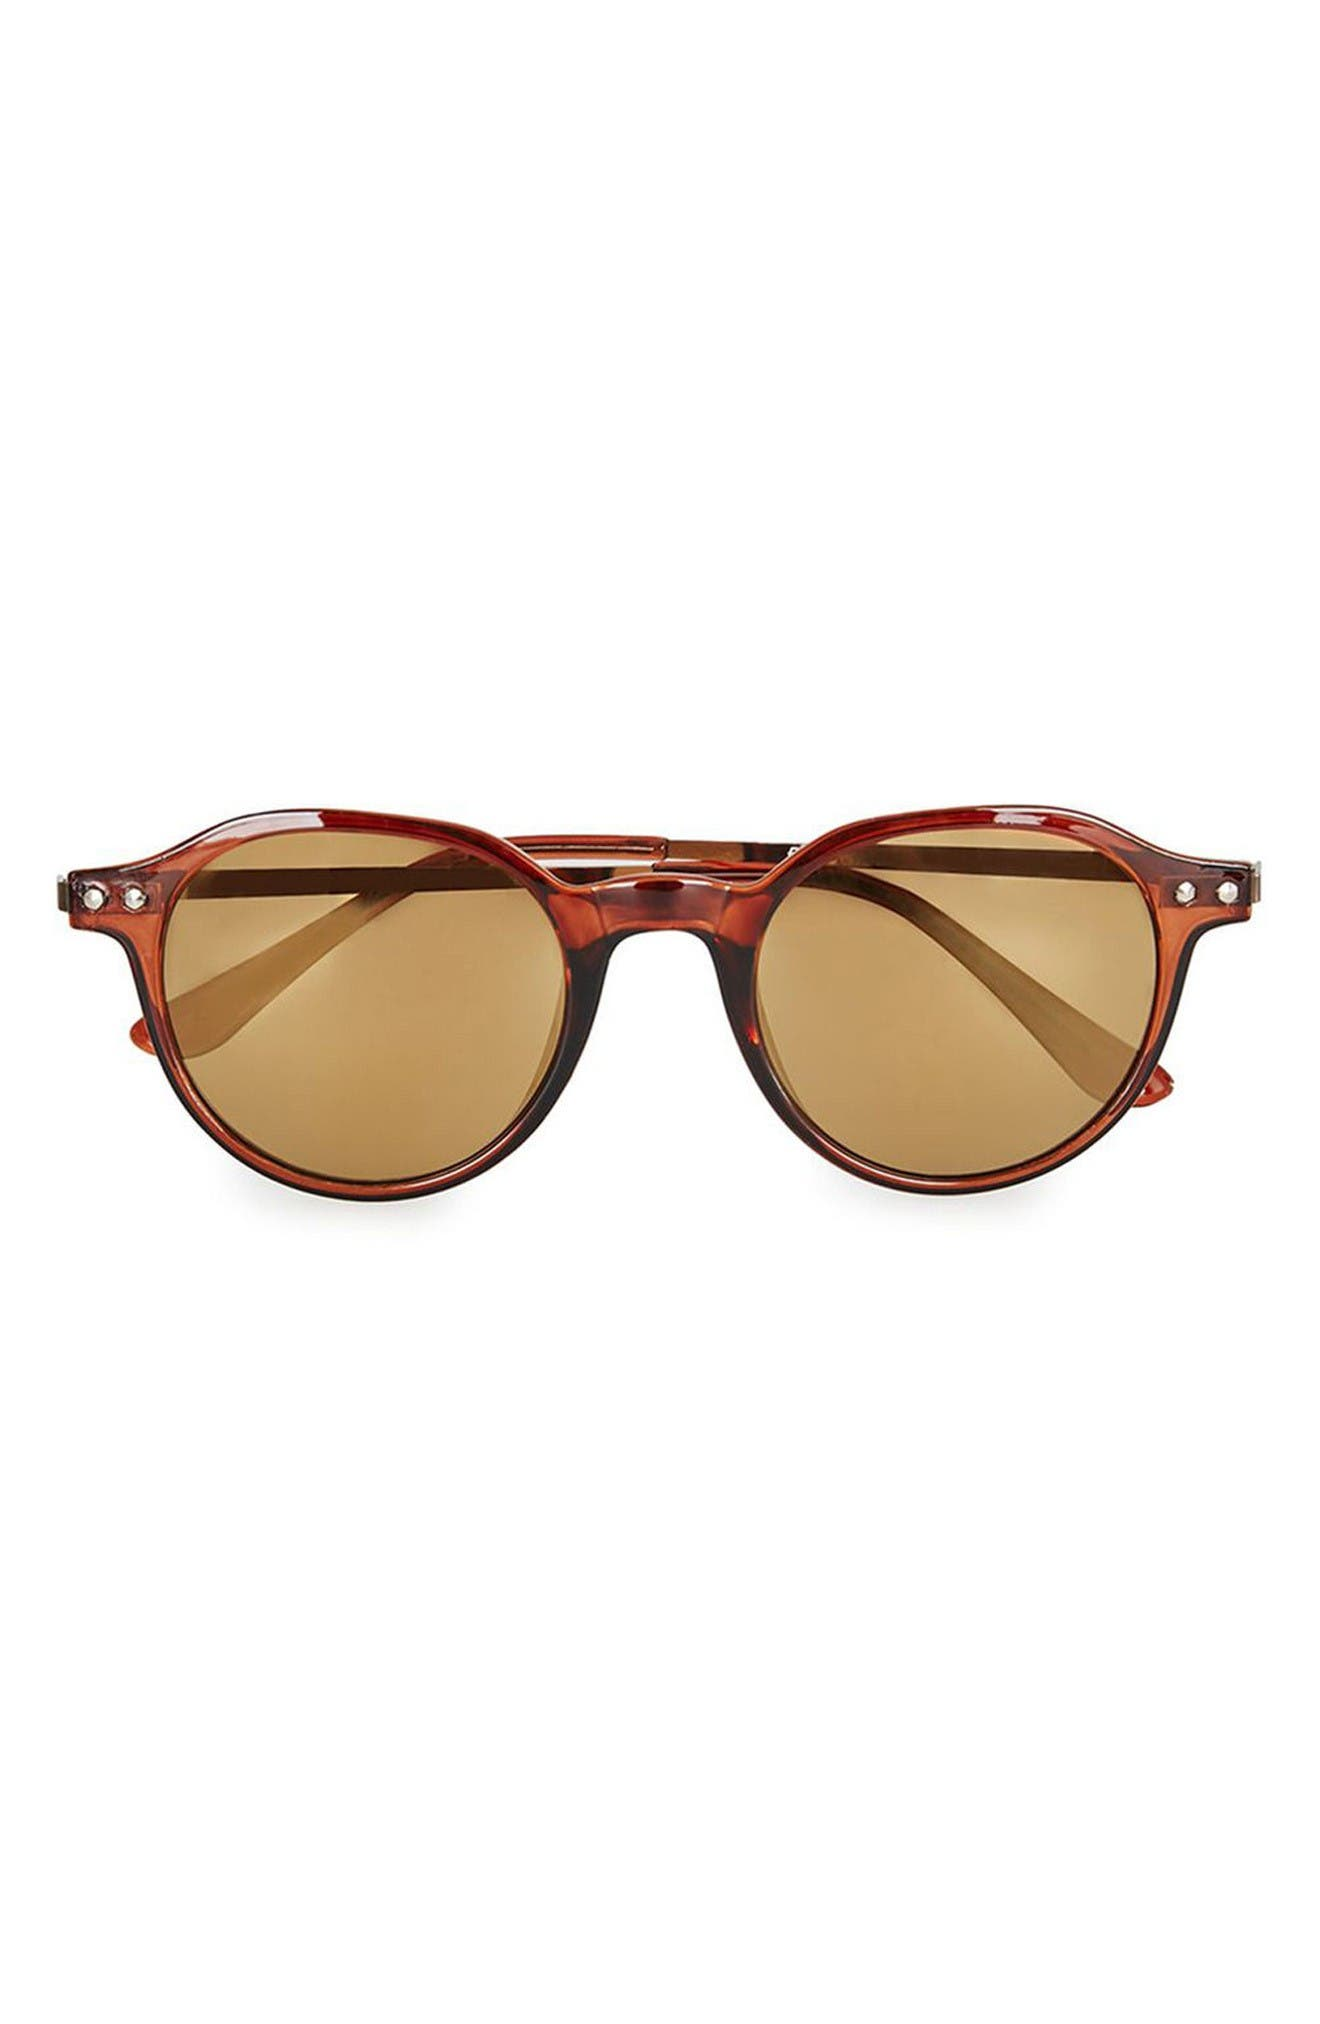 Topman 45mm Round Sunglasses